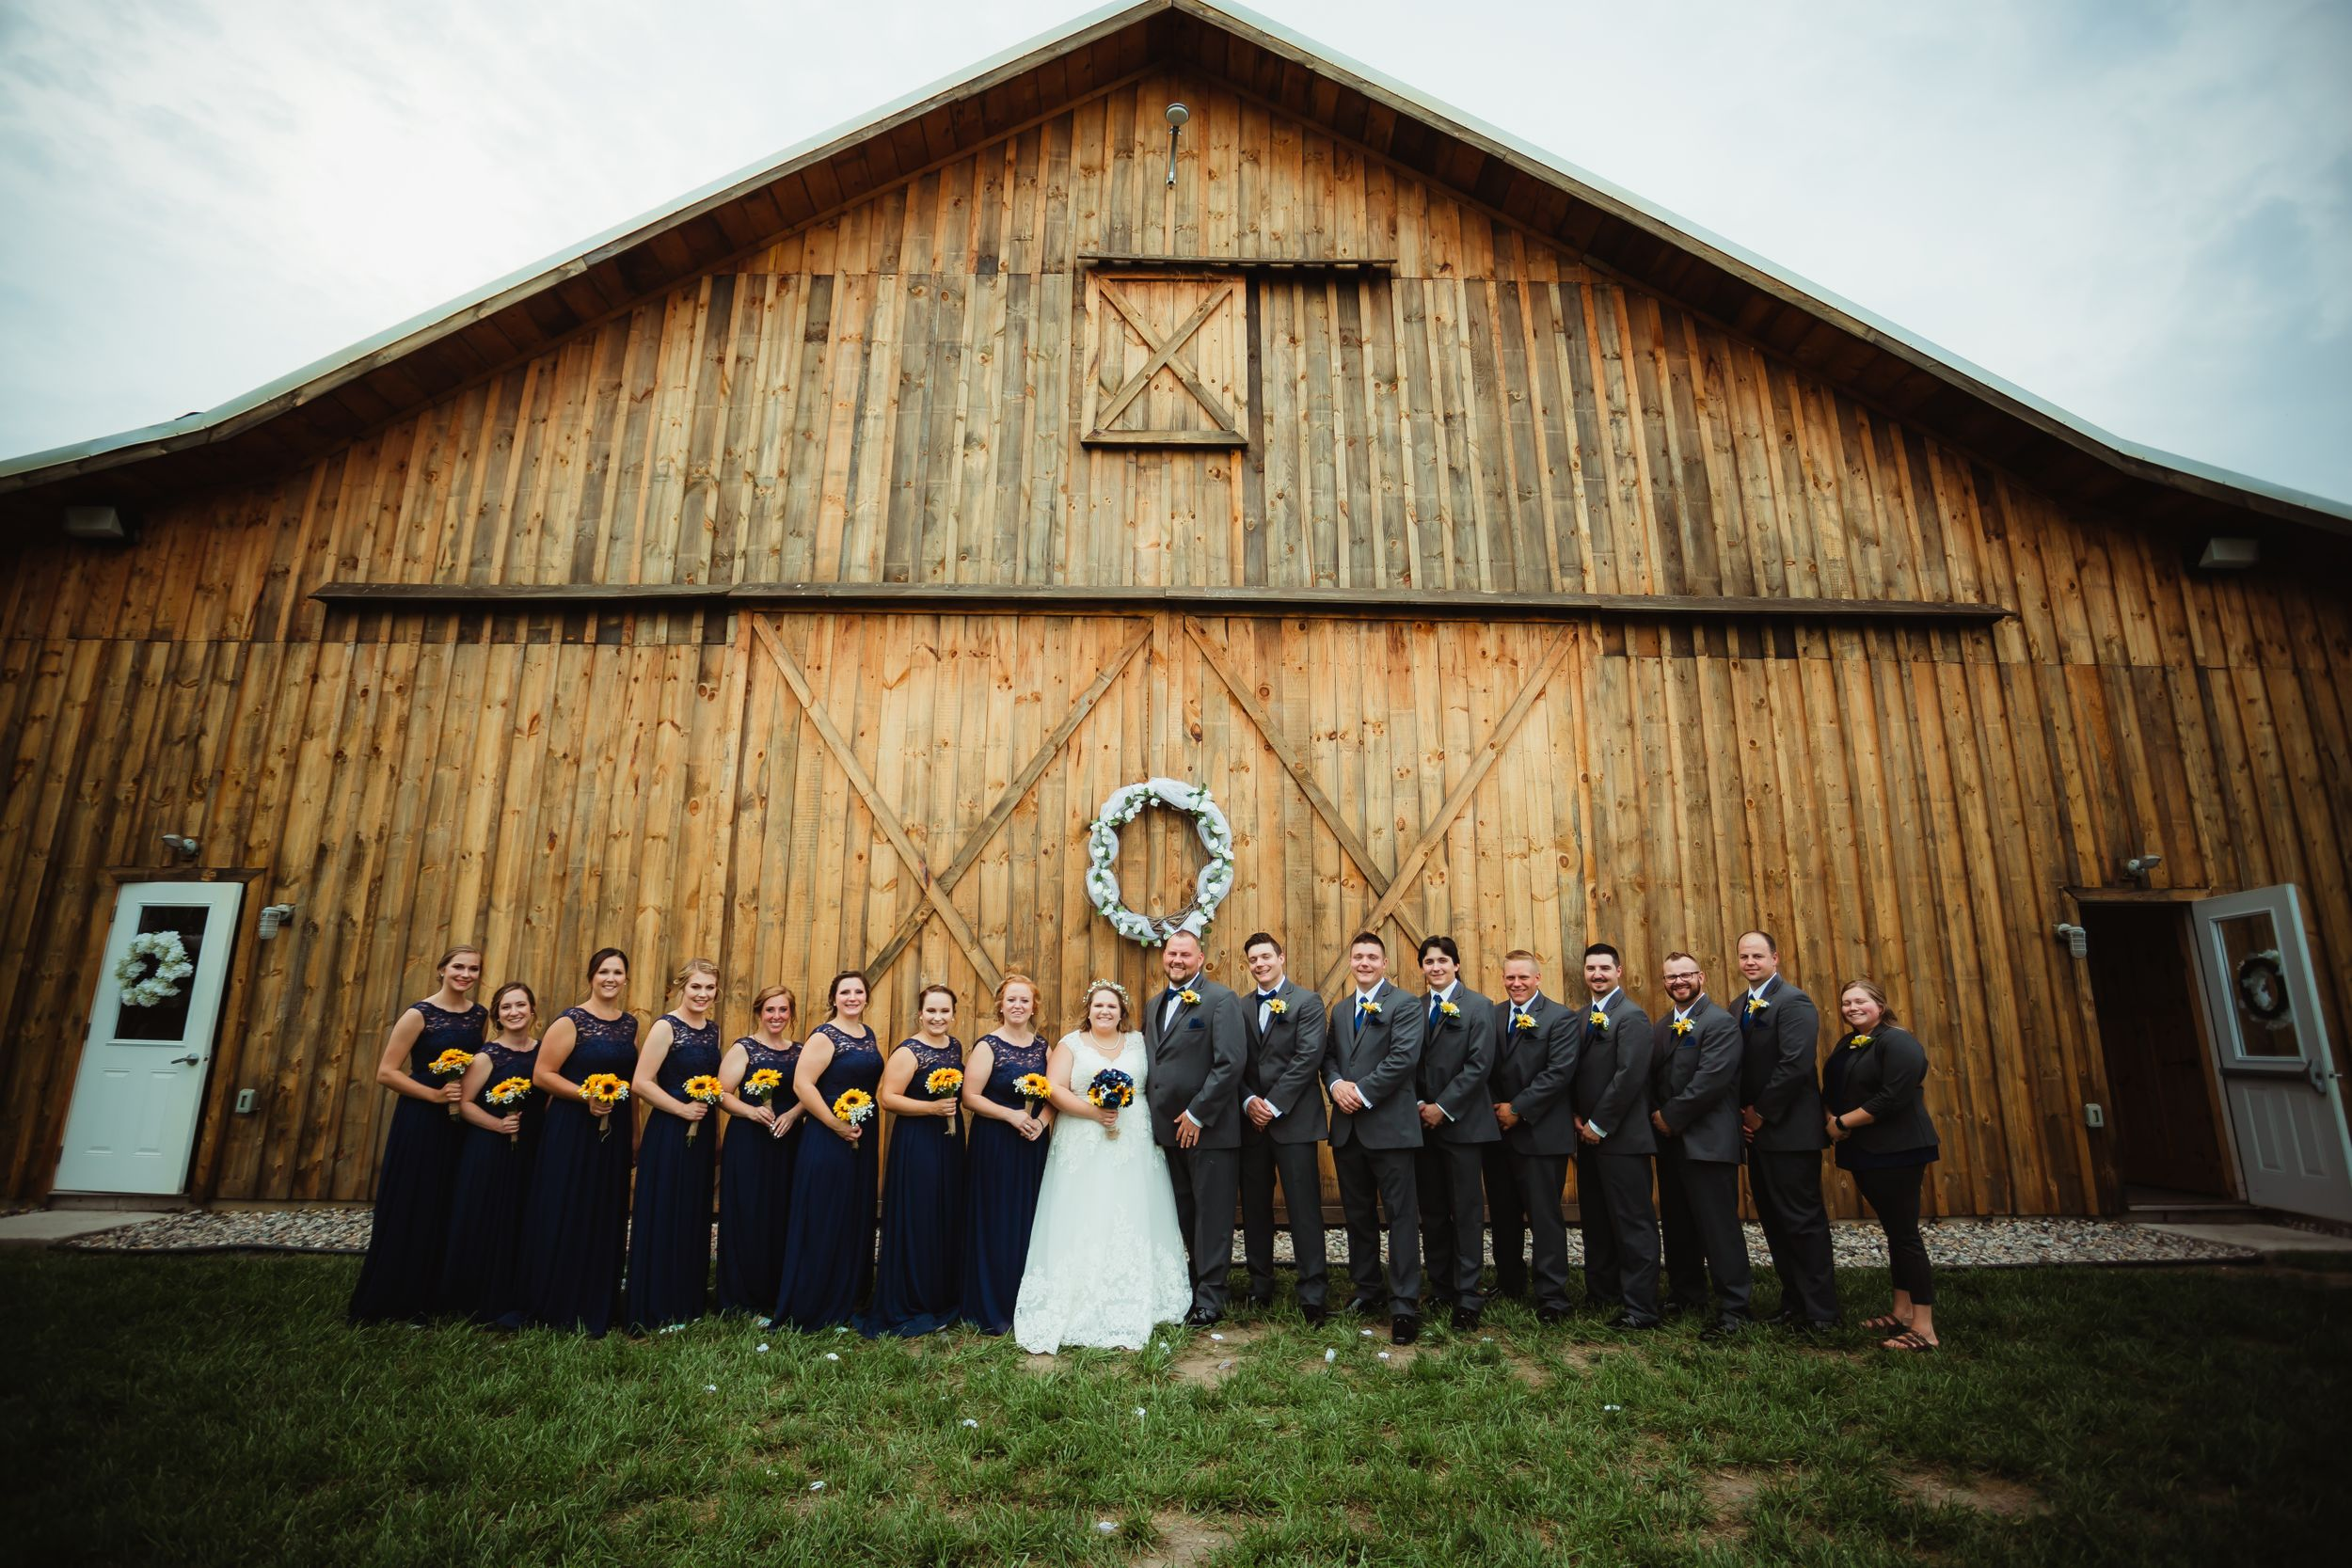 Wide photo of the wedding party smiling in a line in front of the barn.